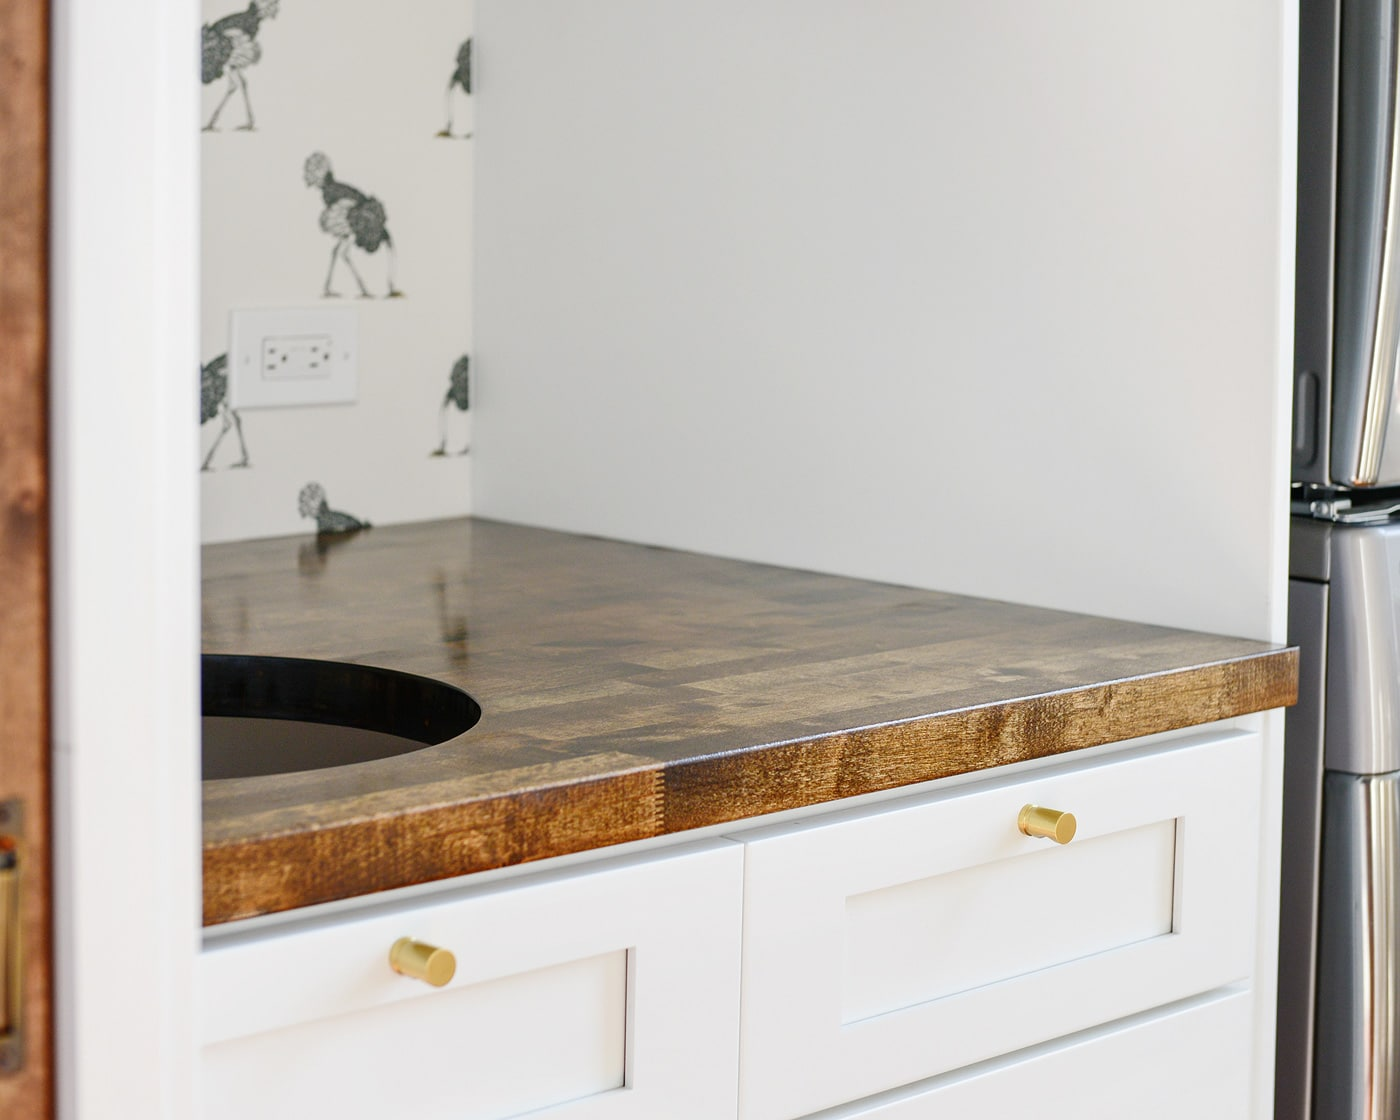 How We Measured, Cut and Installed Our Butcher Block Countertop ...